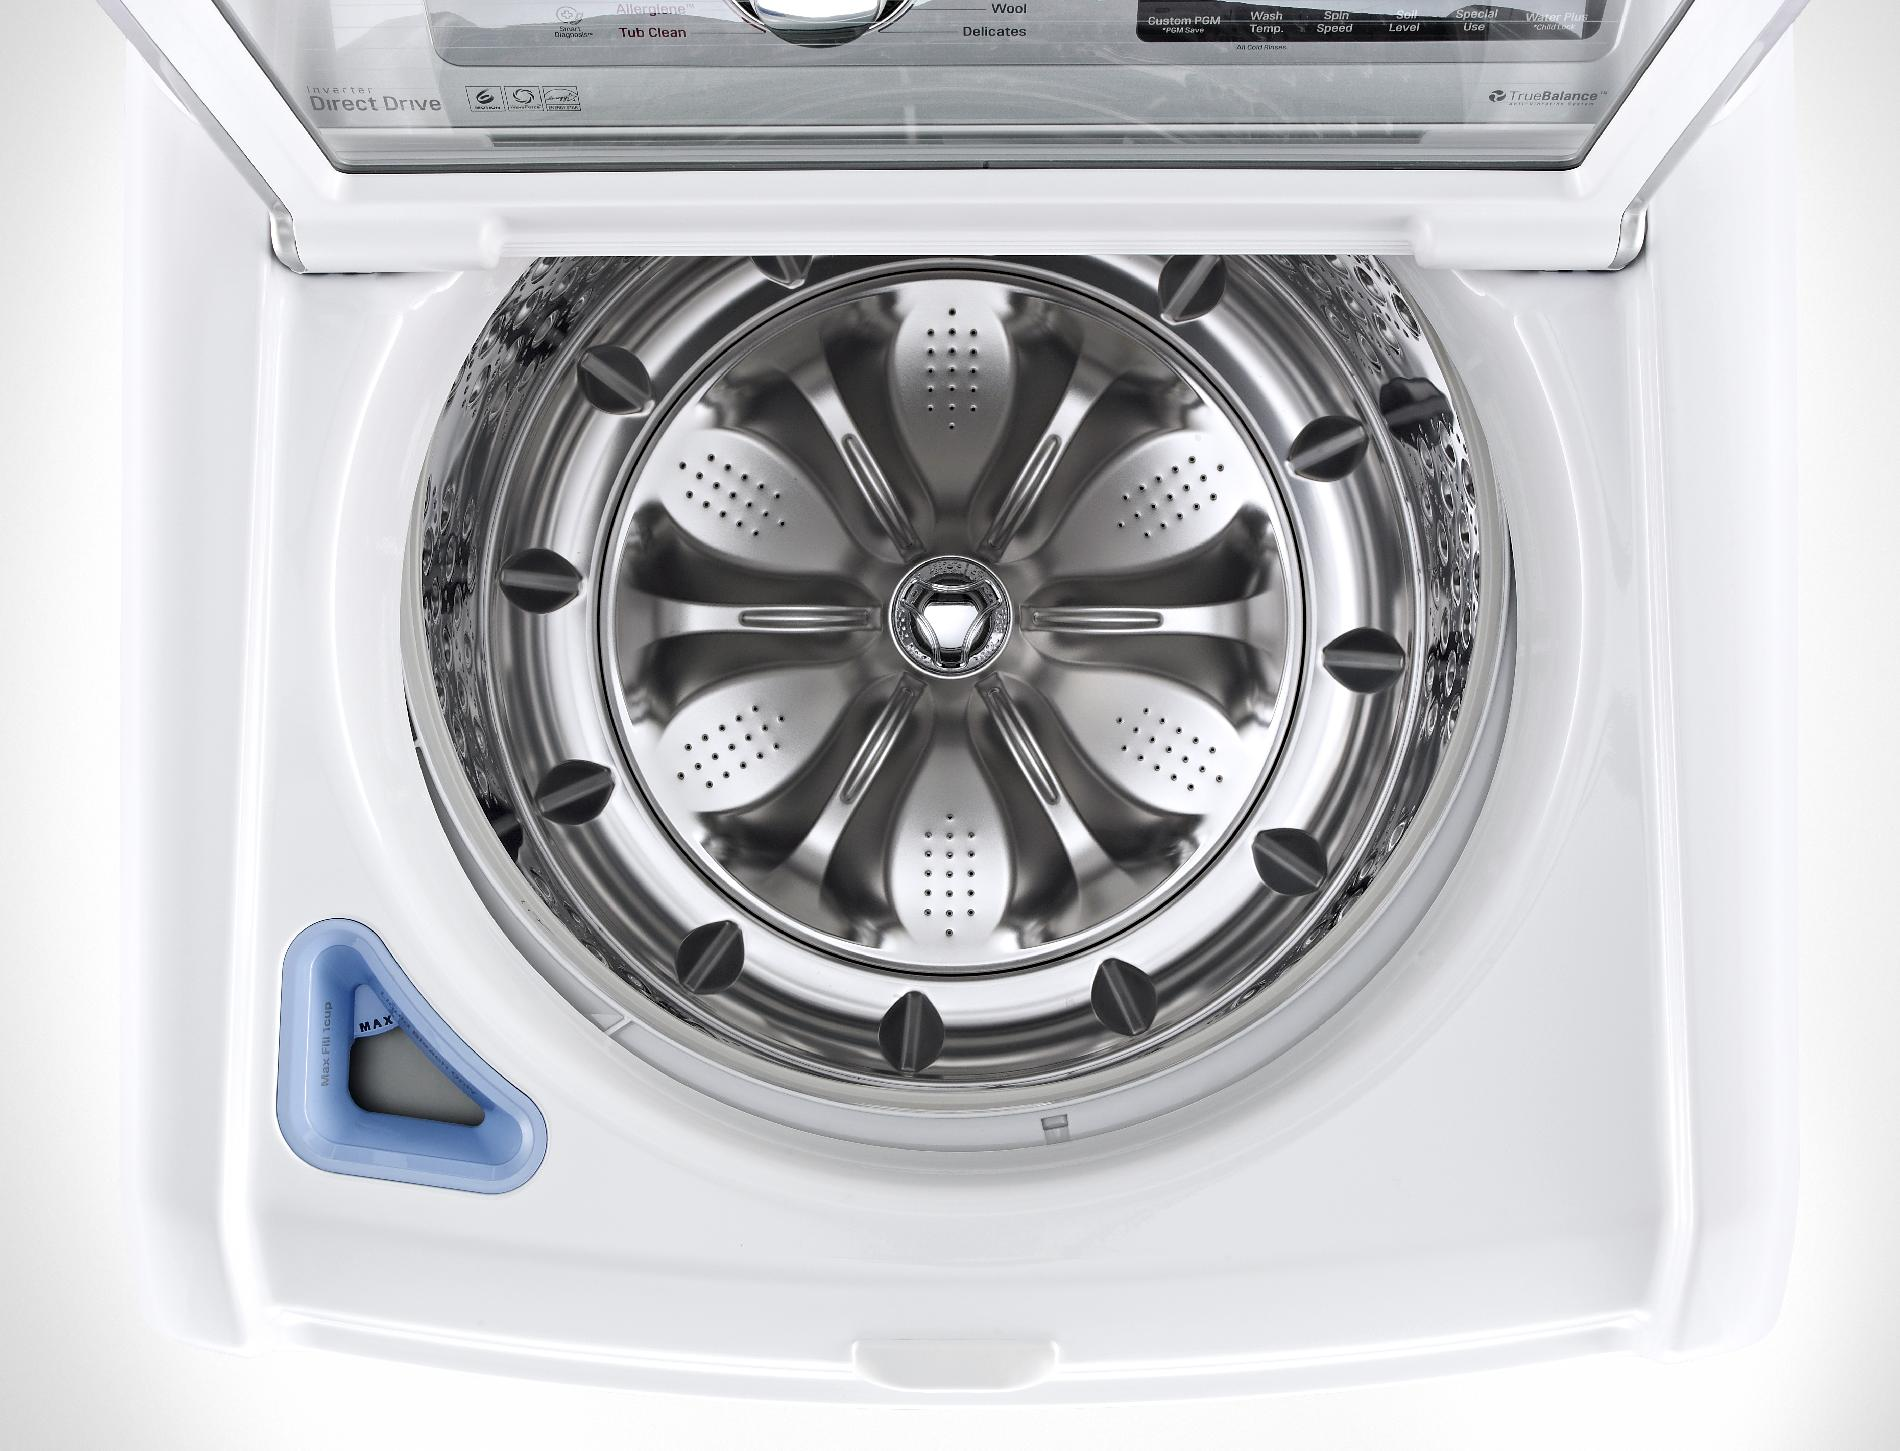 LG 5.2 cu. ft. High Efficiency Top-Load Washer w/ TurboWash™ - White